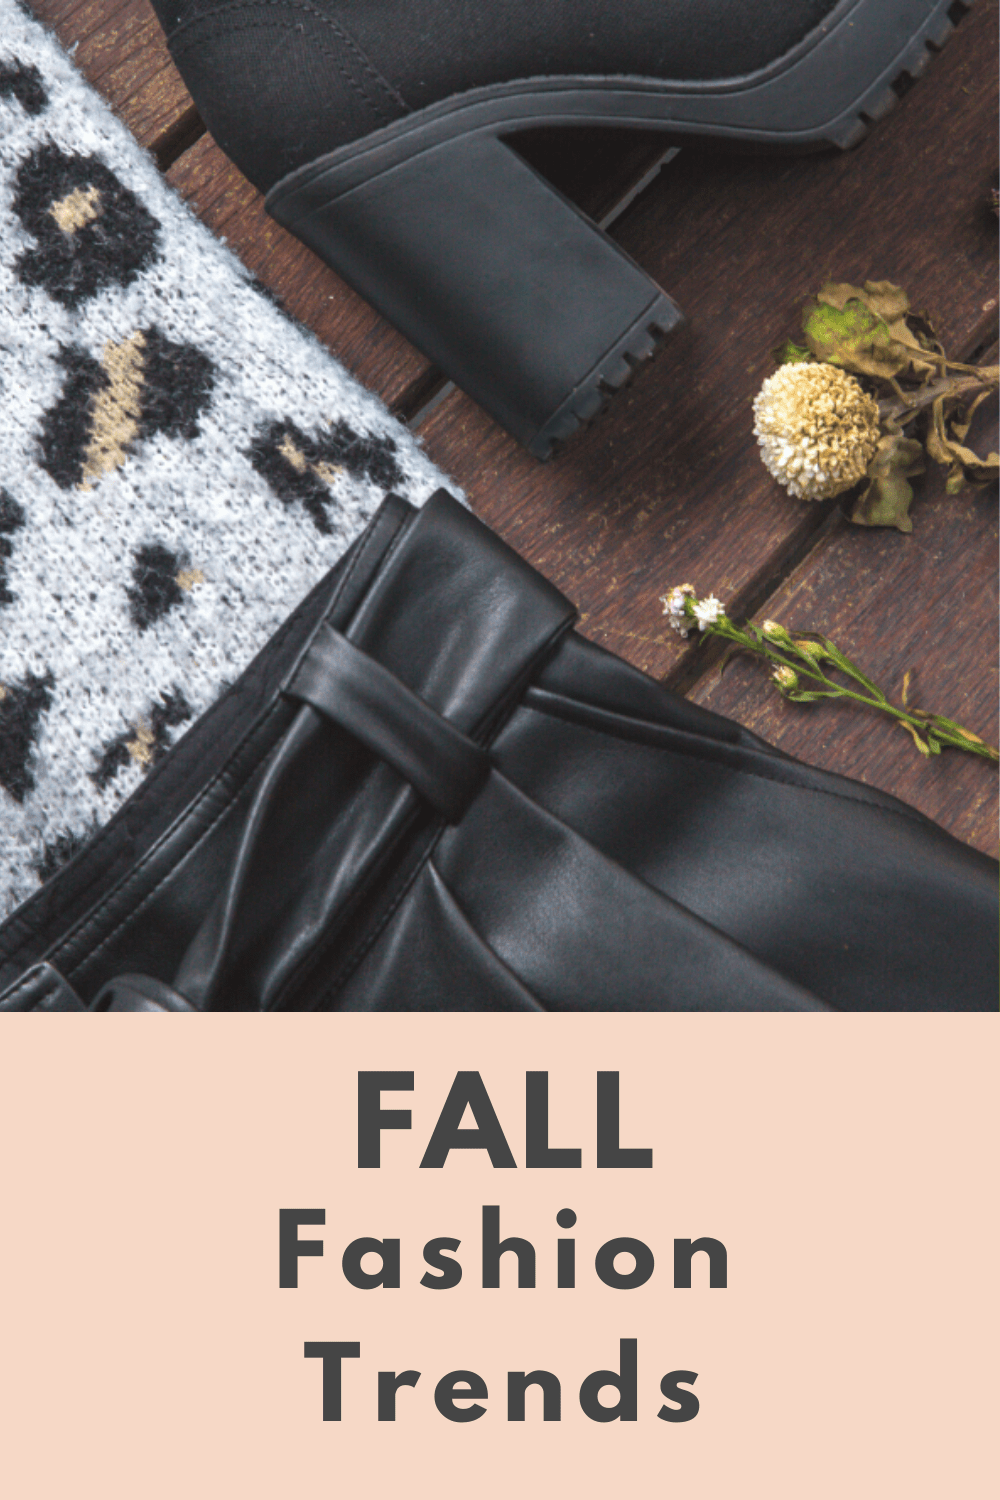 7 Fall Fashion Trends to Keep an Eye On